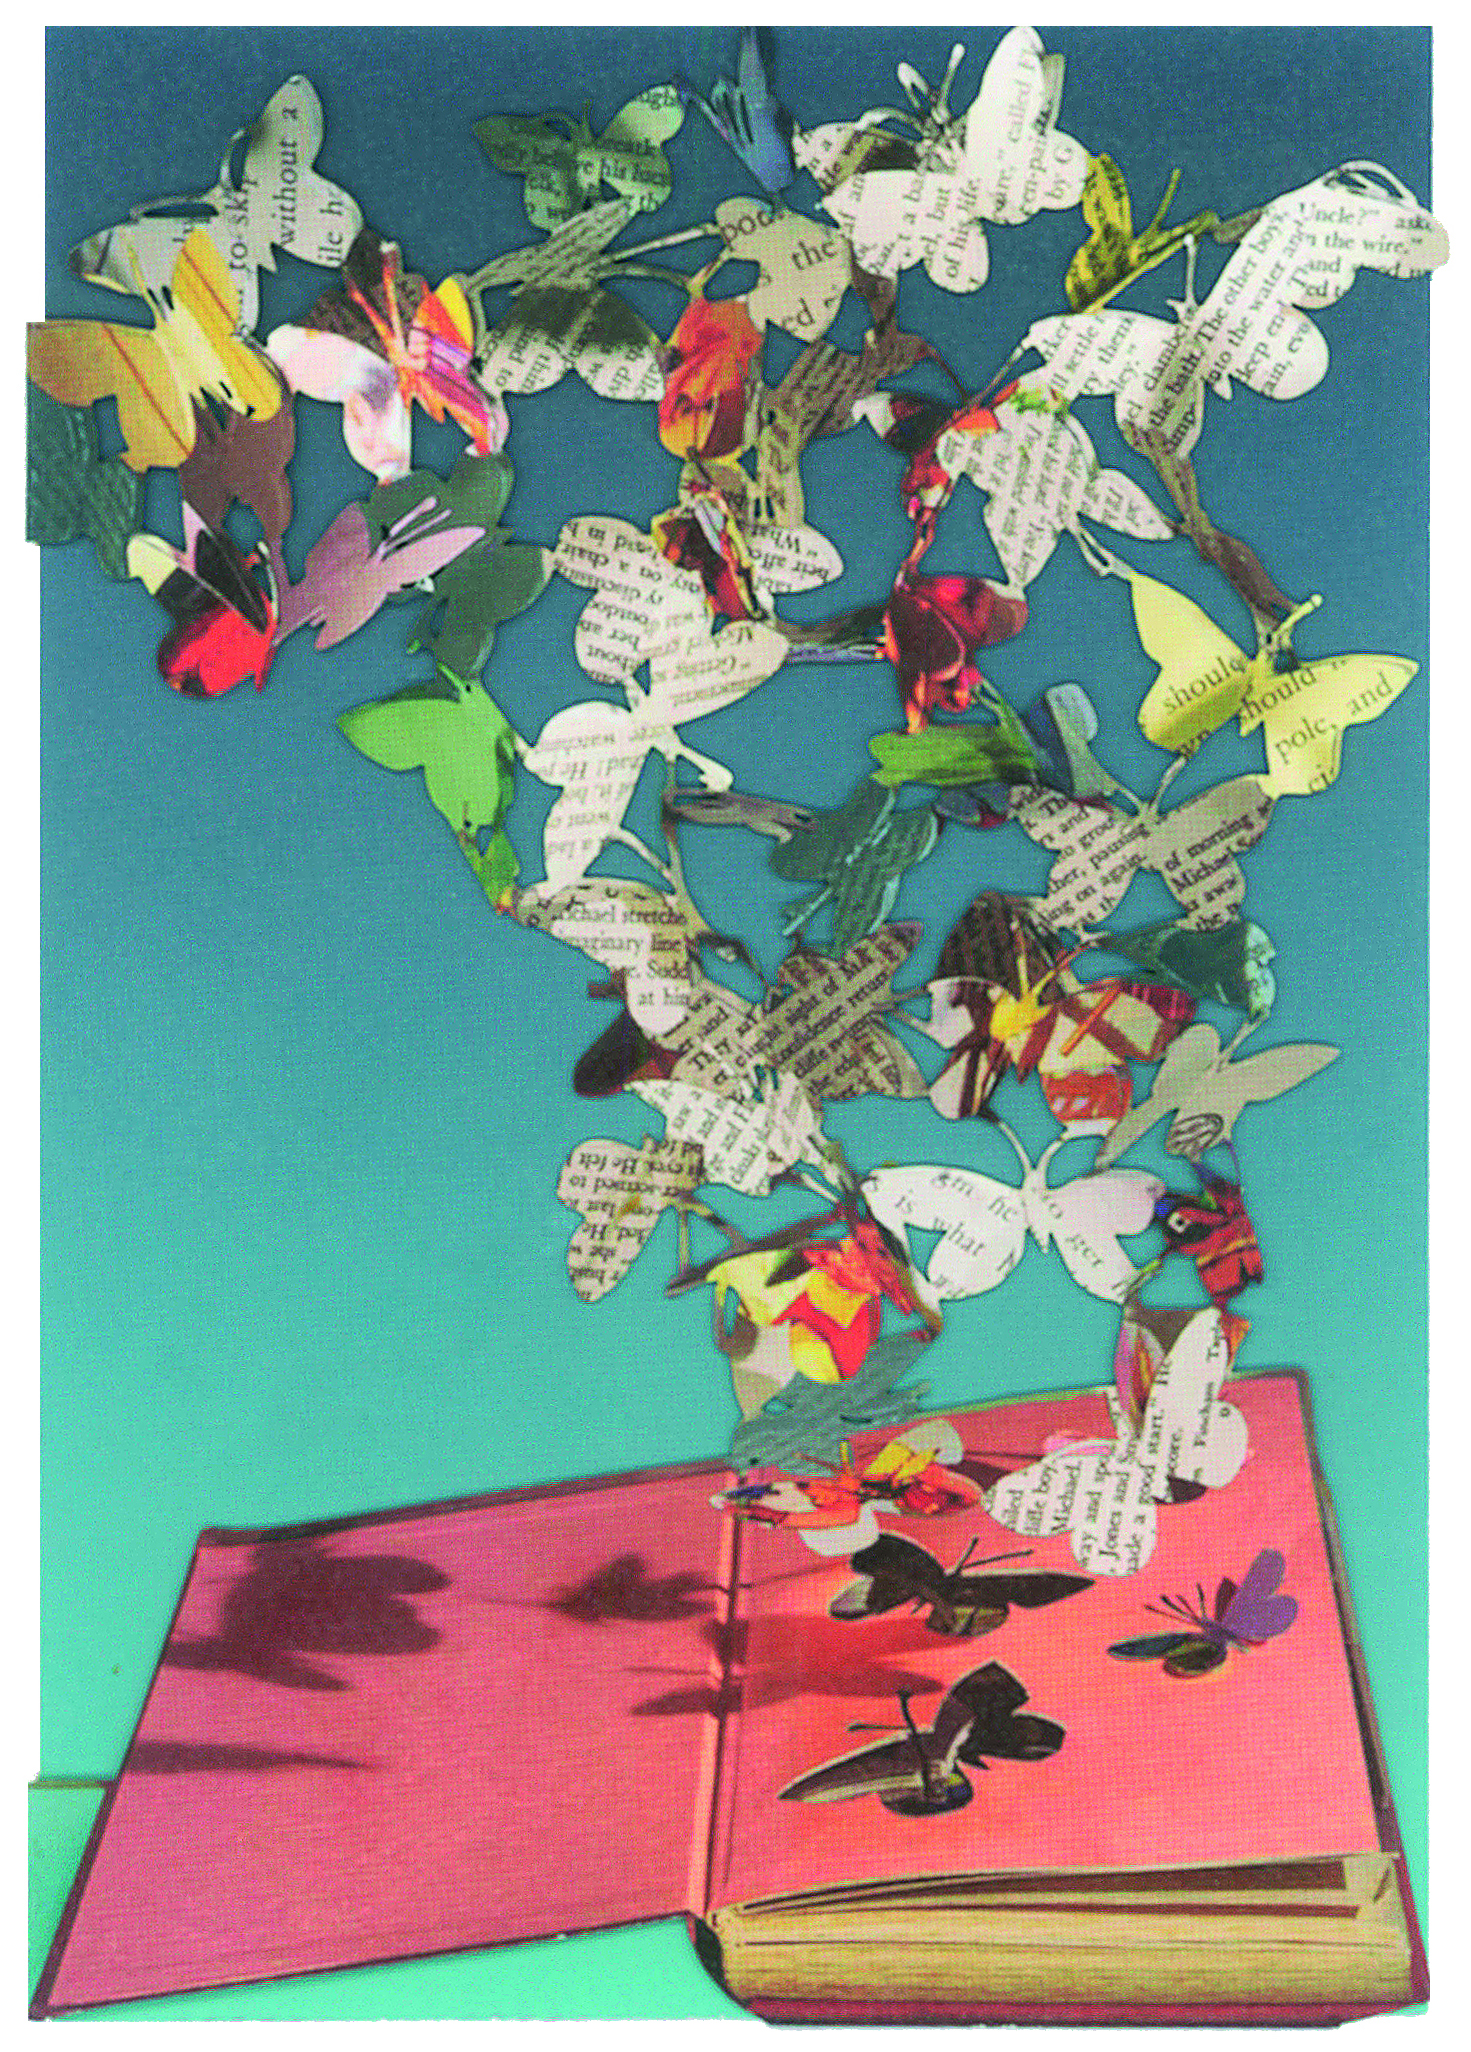 Above: Su Blackwell's artwork translates beautifully onto Roger la Borde's cards for its Scissors Paper Tree range.